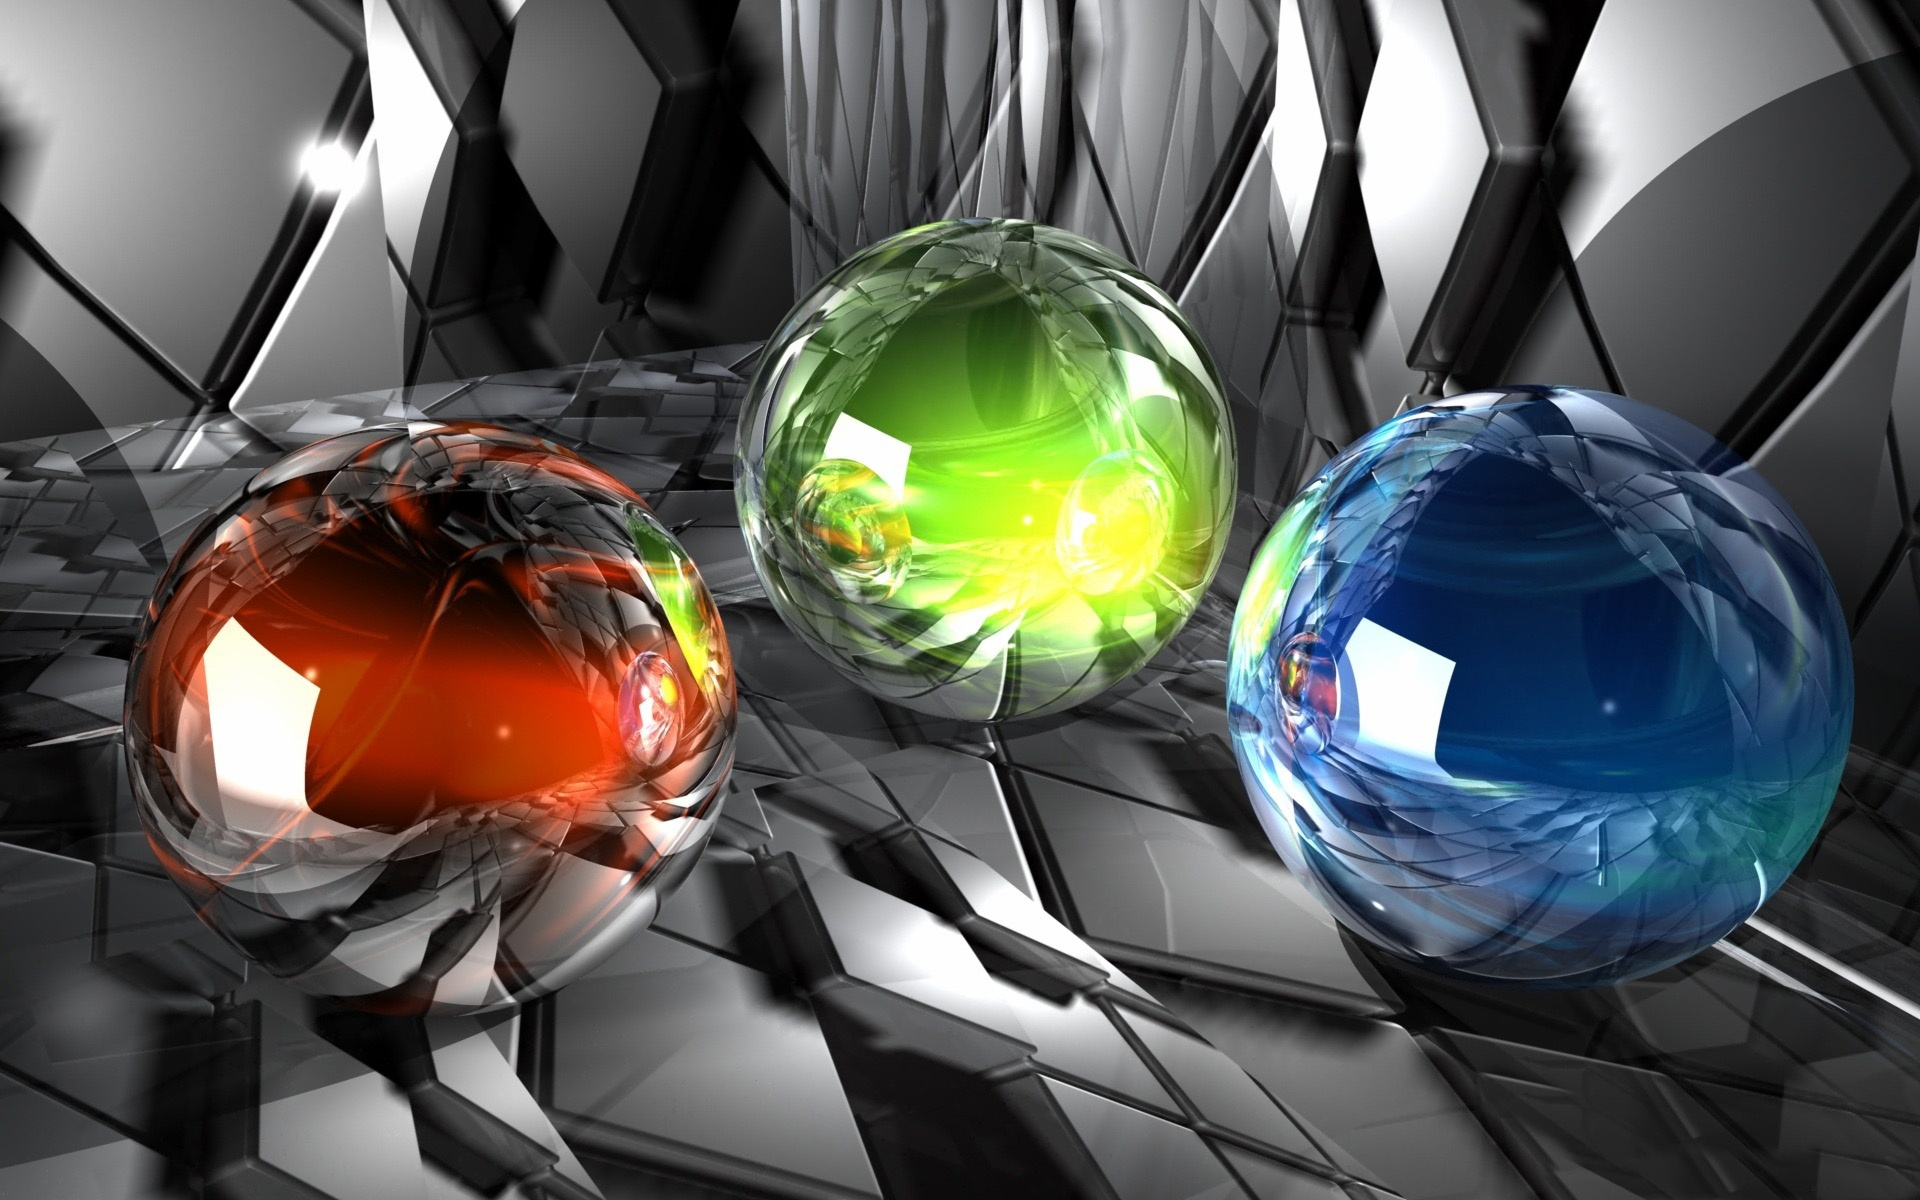 geometry 3d graphics f wallpaper 1920x1200 97580